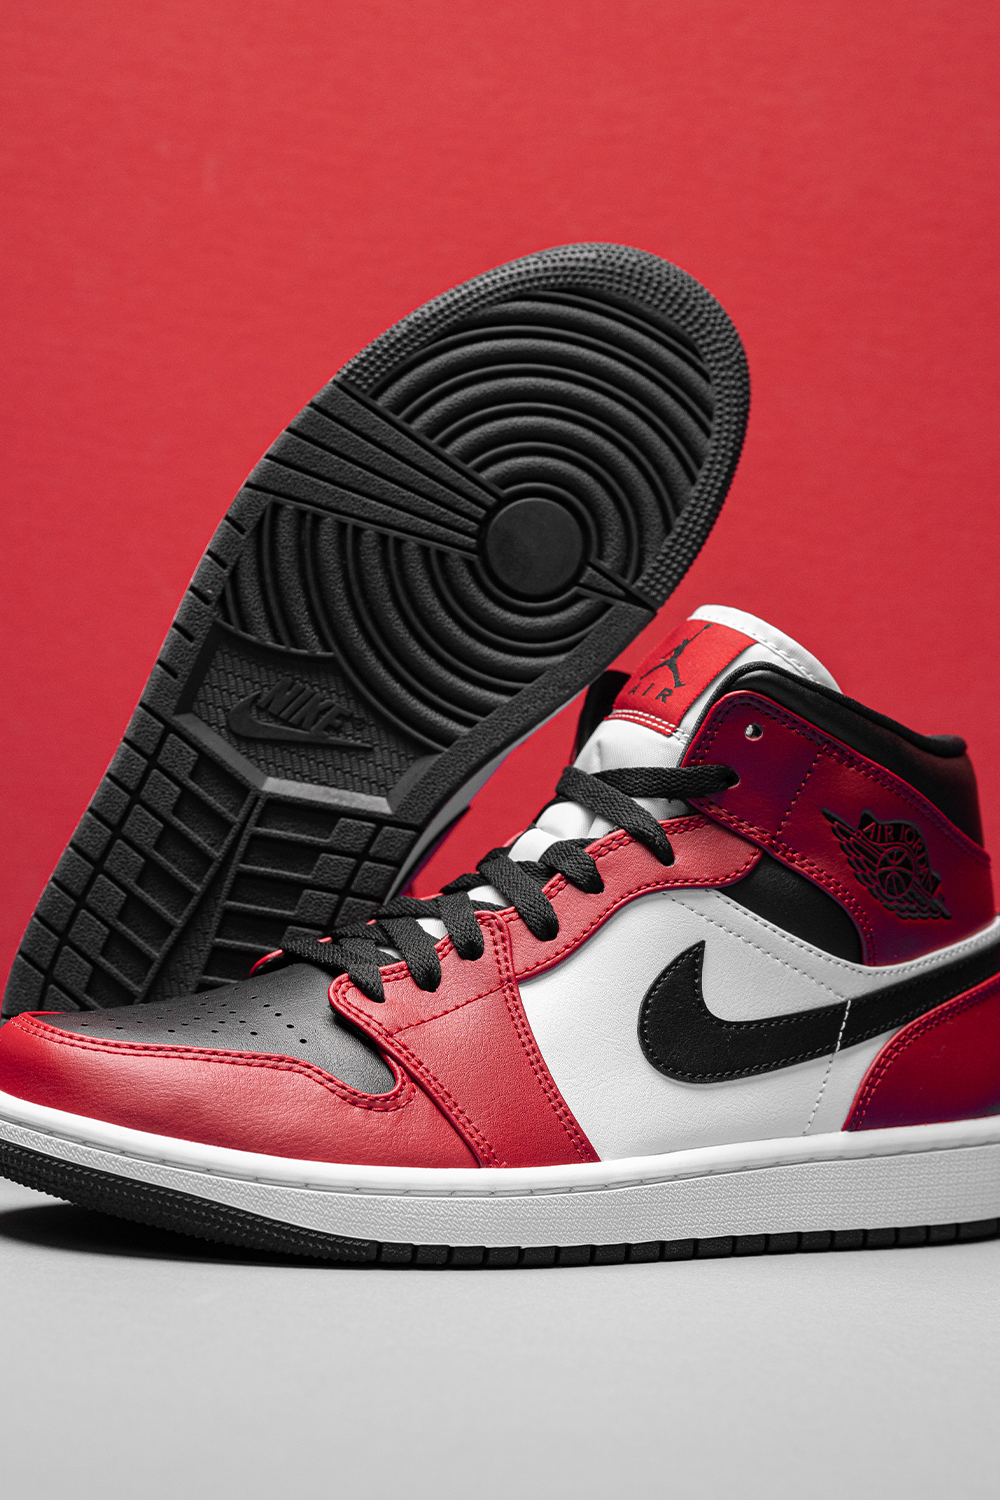 air jordan 1 mid chicago black toe 554724 069 2020 in 2020 air jordans air jordans retro jordans pinterest